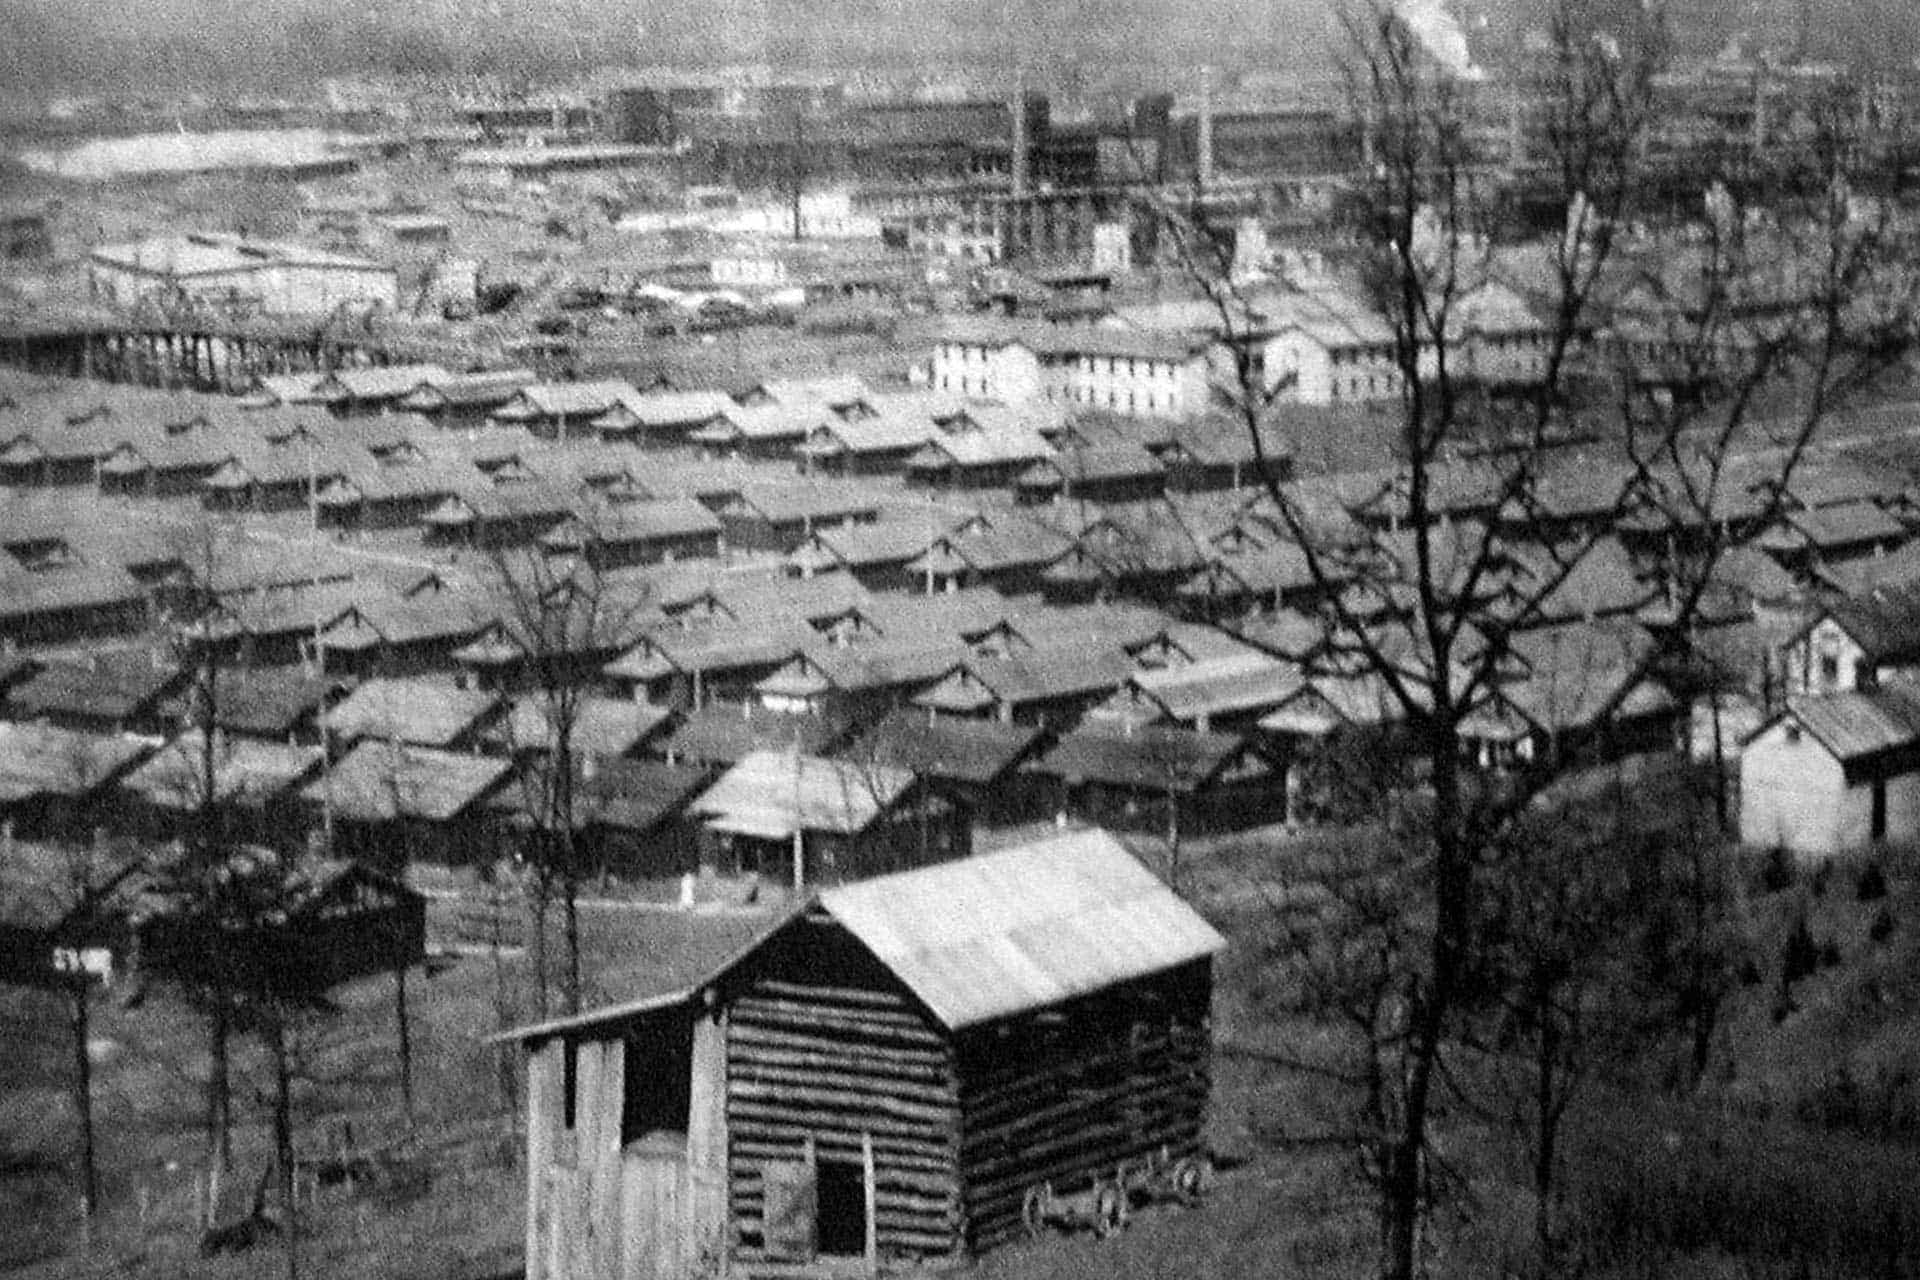 Nitro Explosives Plant in Background-1918 Worker Housing in Foreground